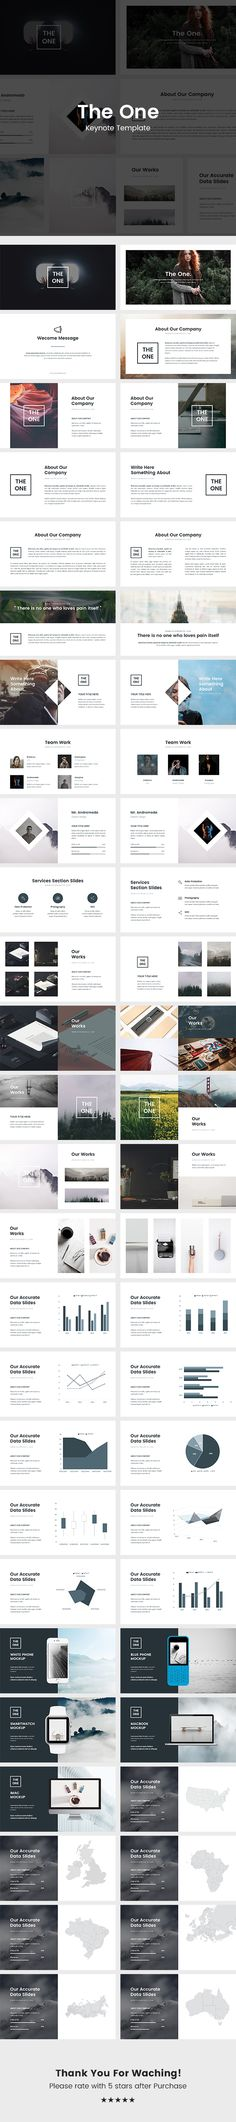 The One - Keynote Template                                                                                                                                                                                 More